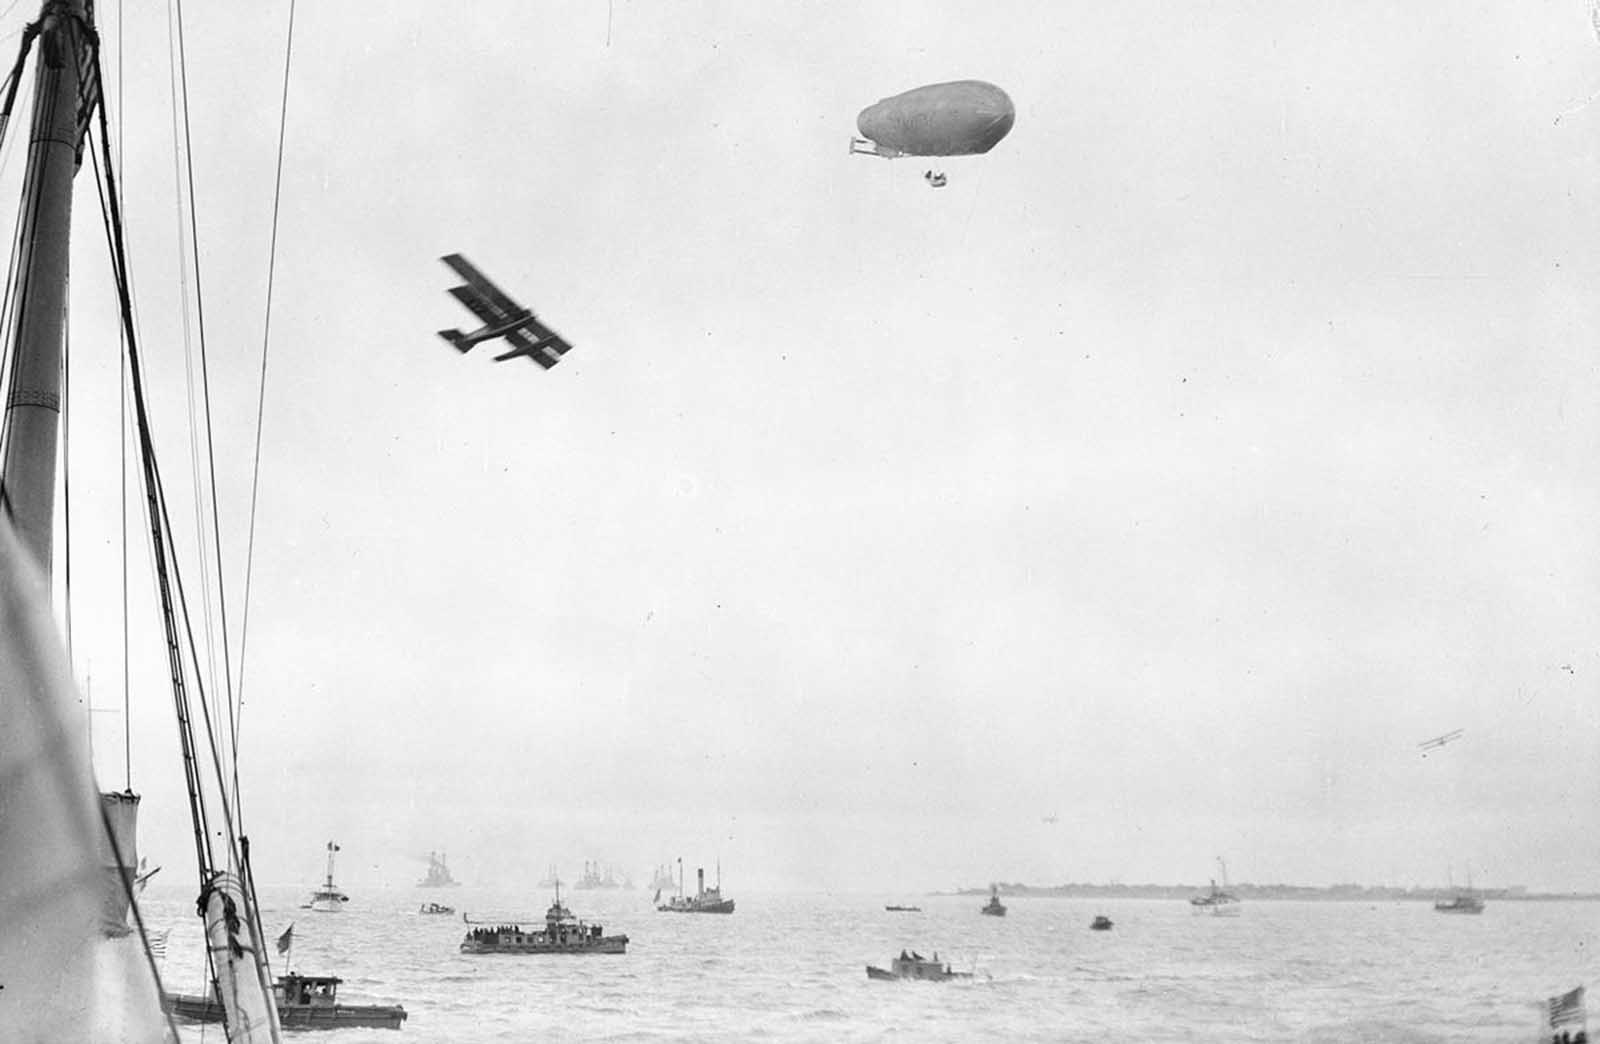 Boats, airplane, and airship, ca. 1922. Possibly the U.S. Navy's SCDA O-1.